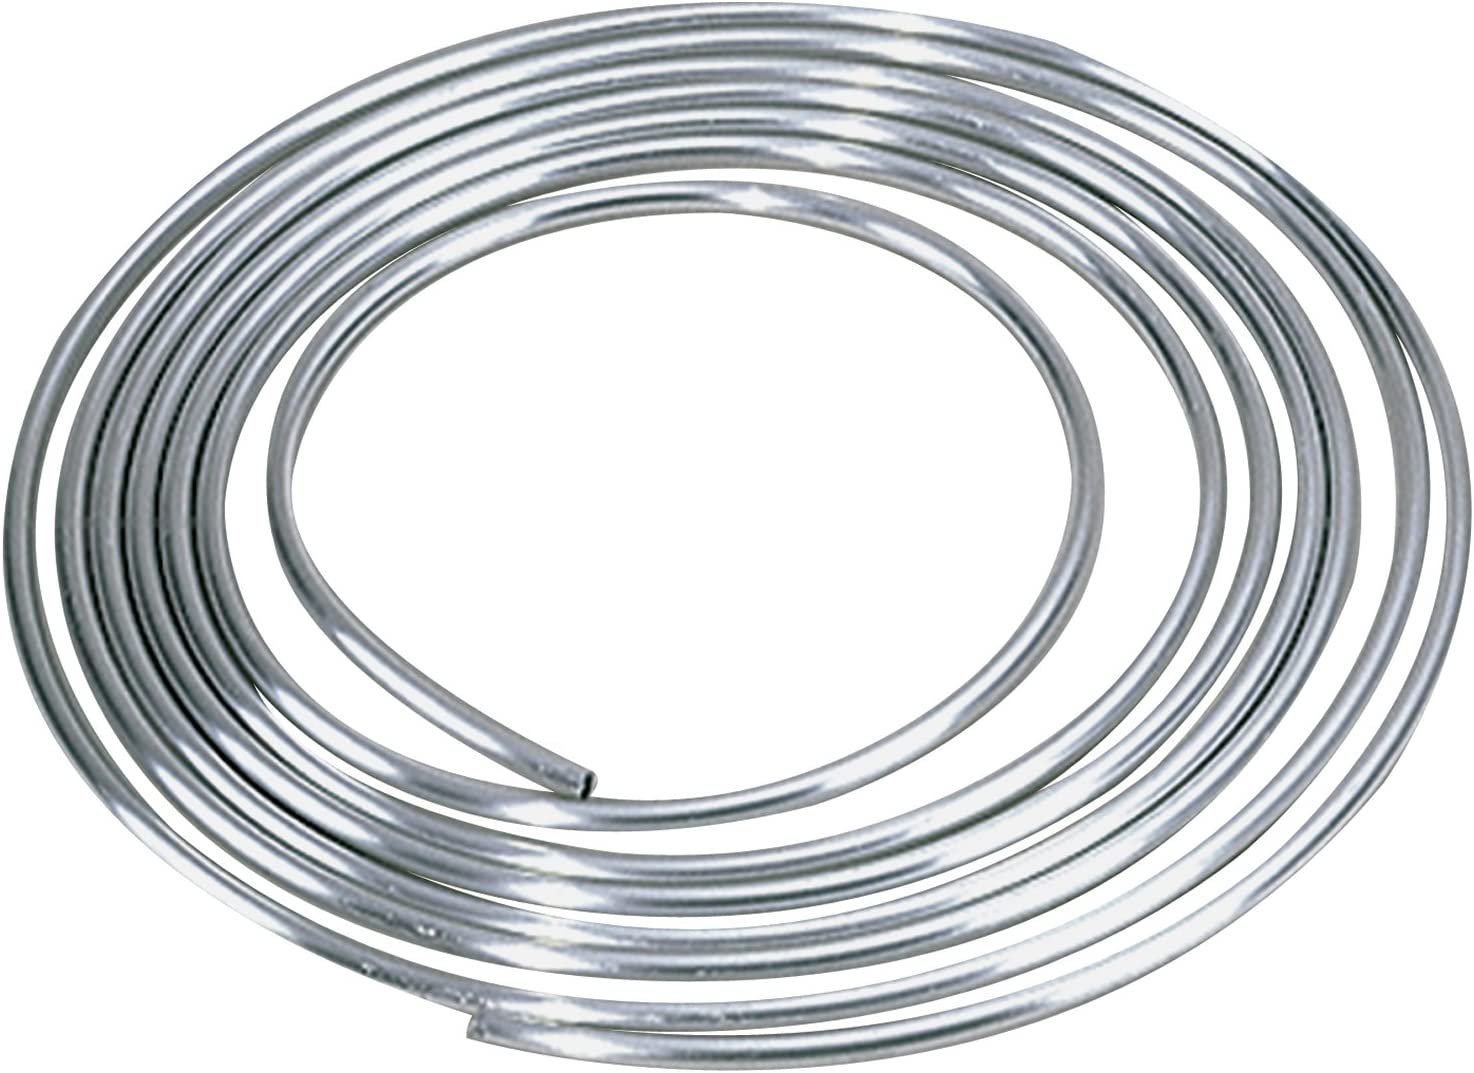 "Allstar ALL40180 3/8"" Diameter 25' Aluminum Coiled Tubing Fuel Line"